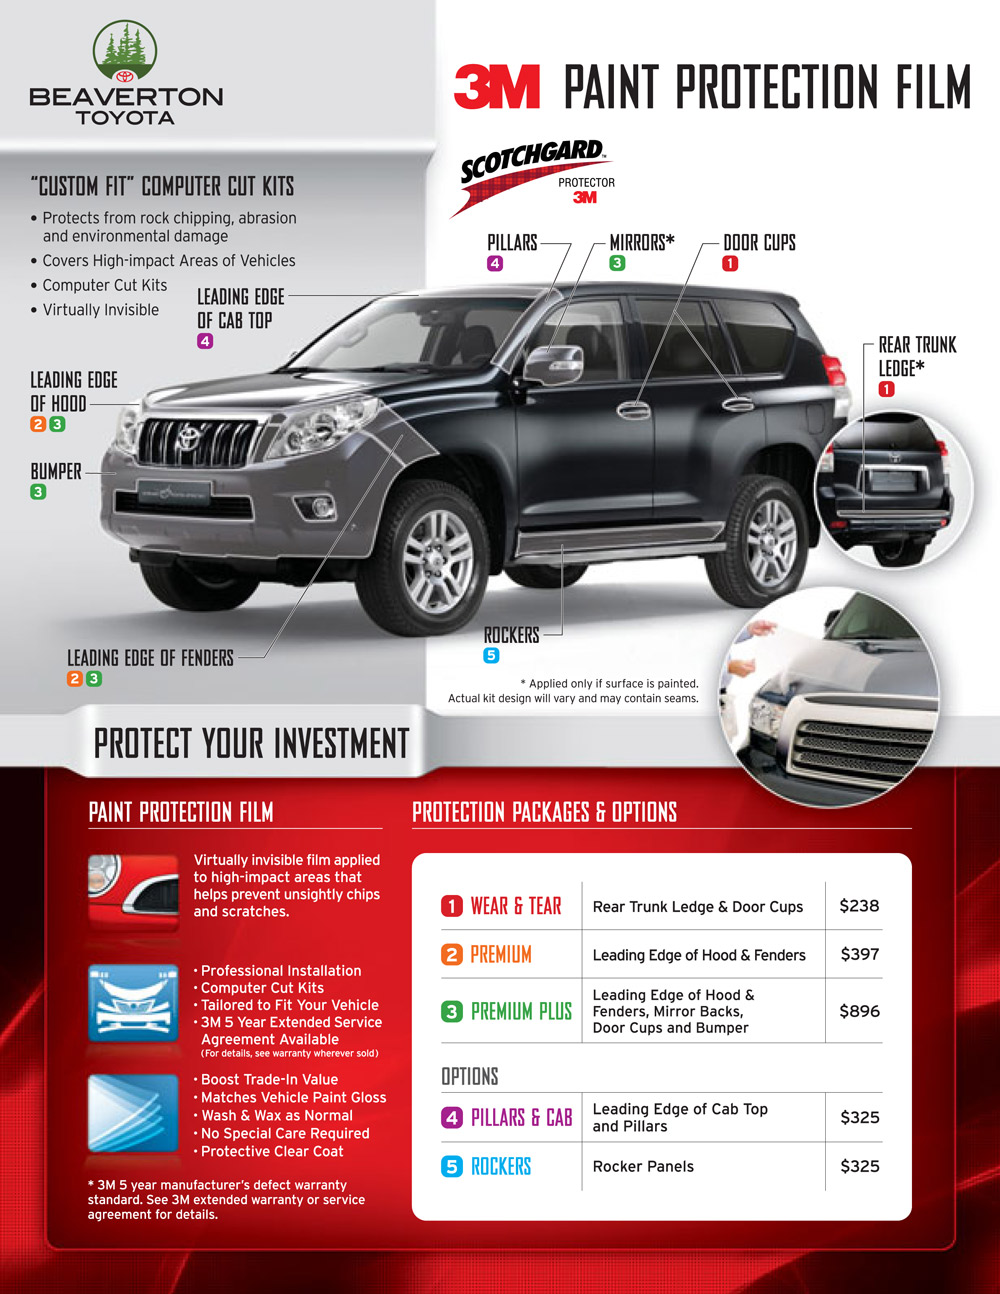 Toyota Protection Products A 1 Toyota offering best